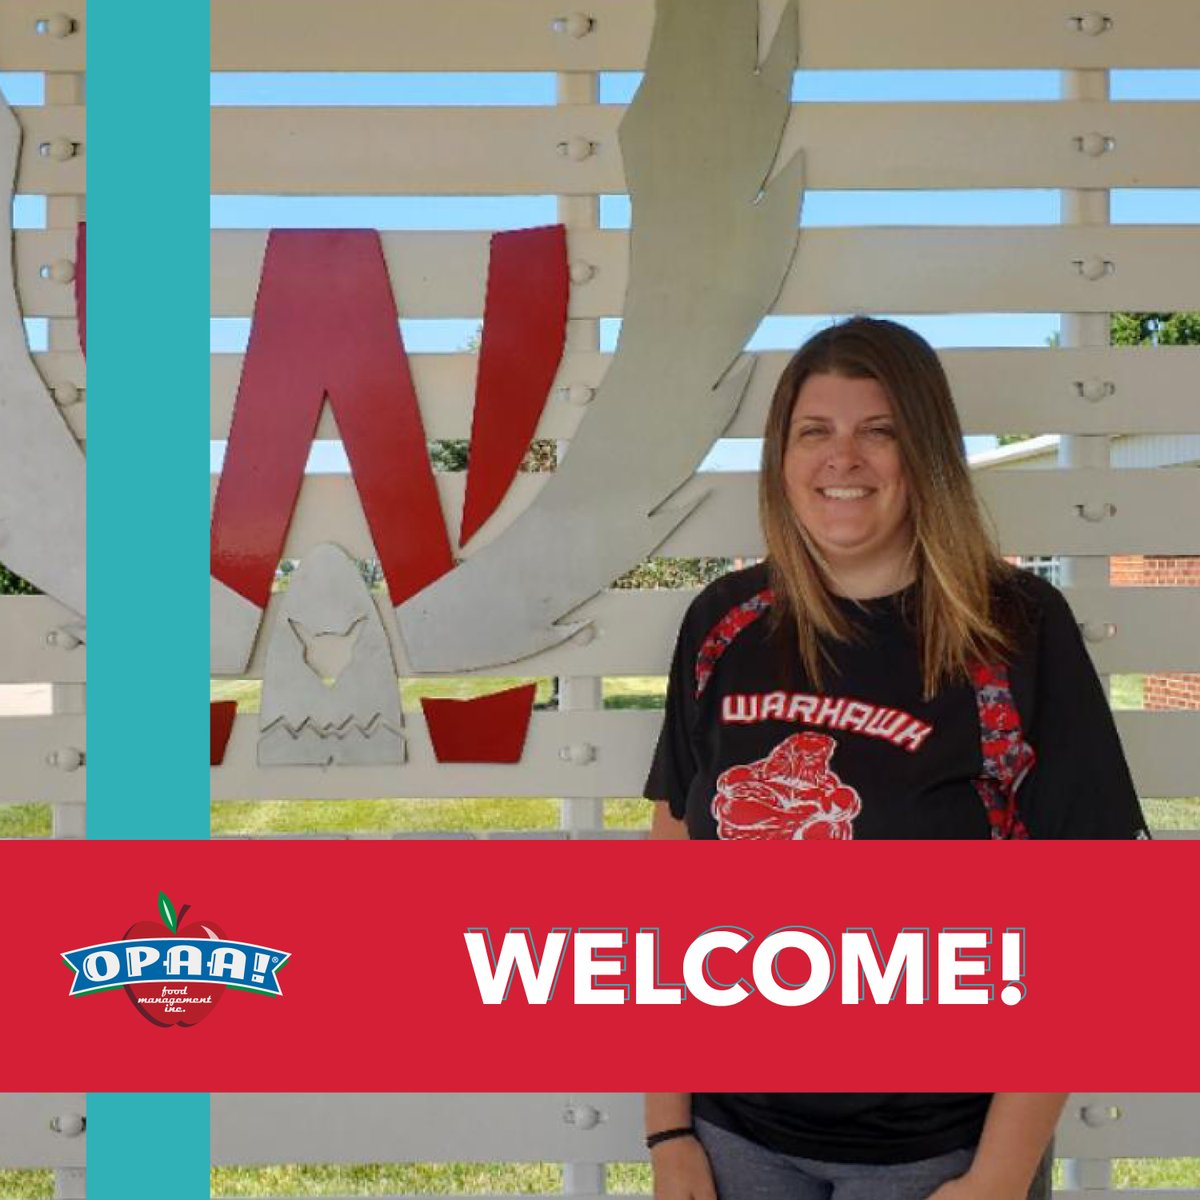 The Wieman Region would like to Welcome Sarah Licth to team Iowa. Sarah is the New Director of Nutrition Services for North Mahaska School. #Welcome #MakeTheirDaypic.twitter.com/BrIyXLRCQA